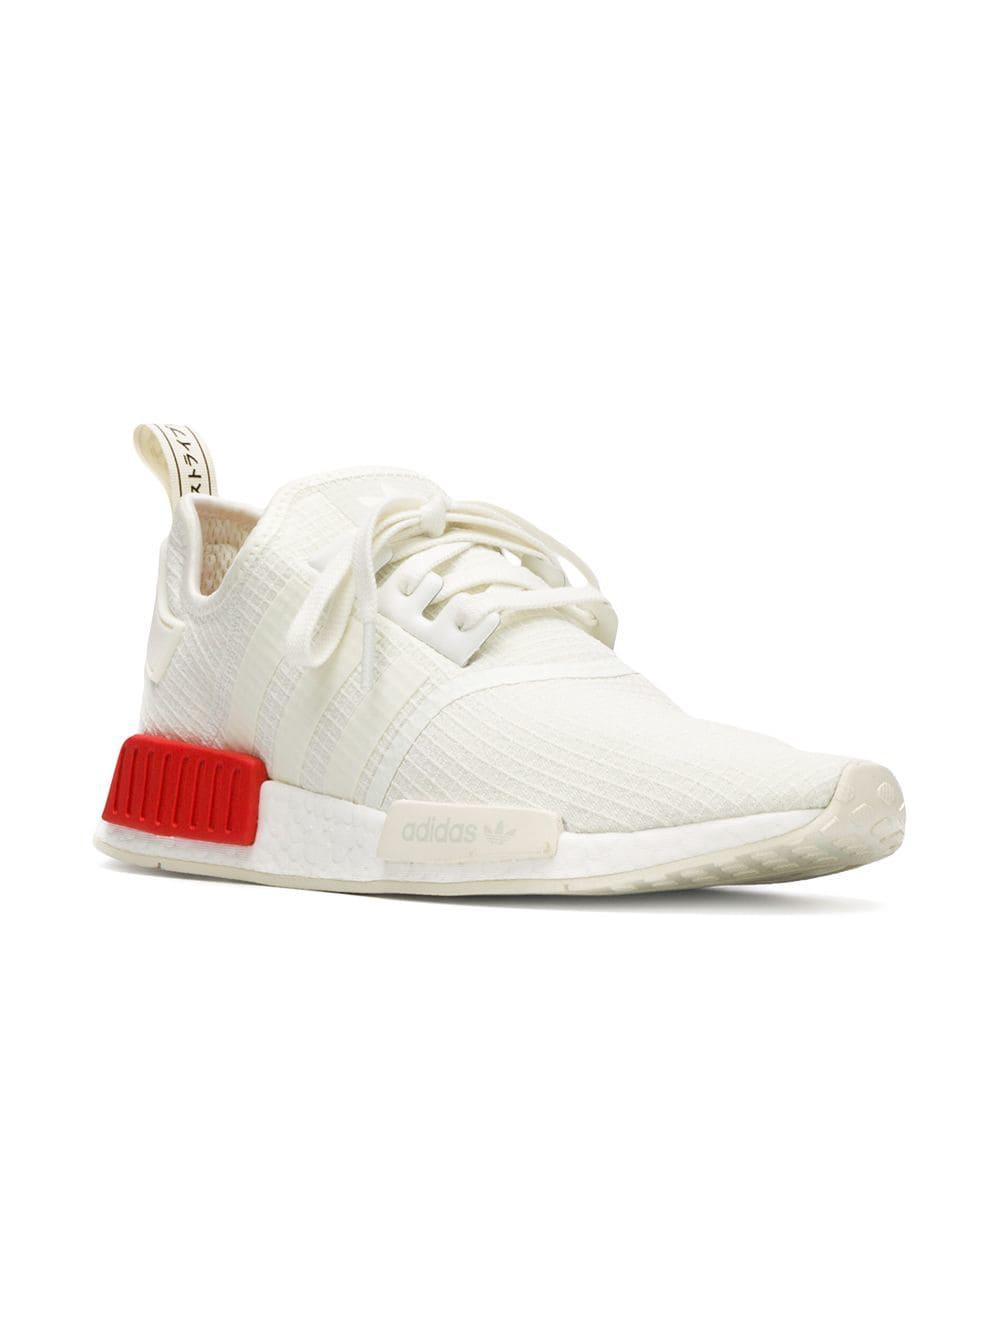 1a176e17d adidas Nmd R1 Sneakers in White for Men - Lyst